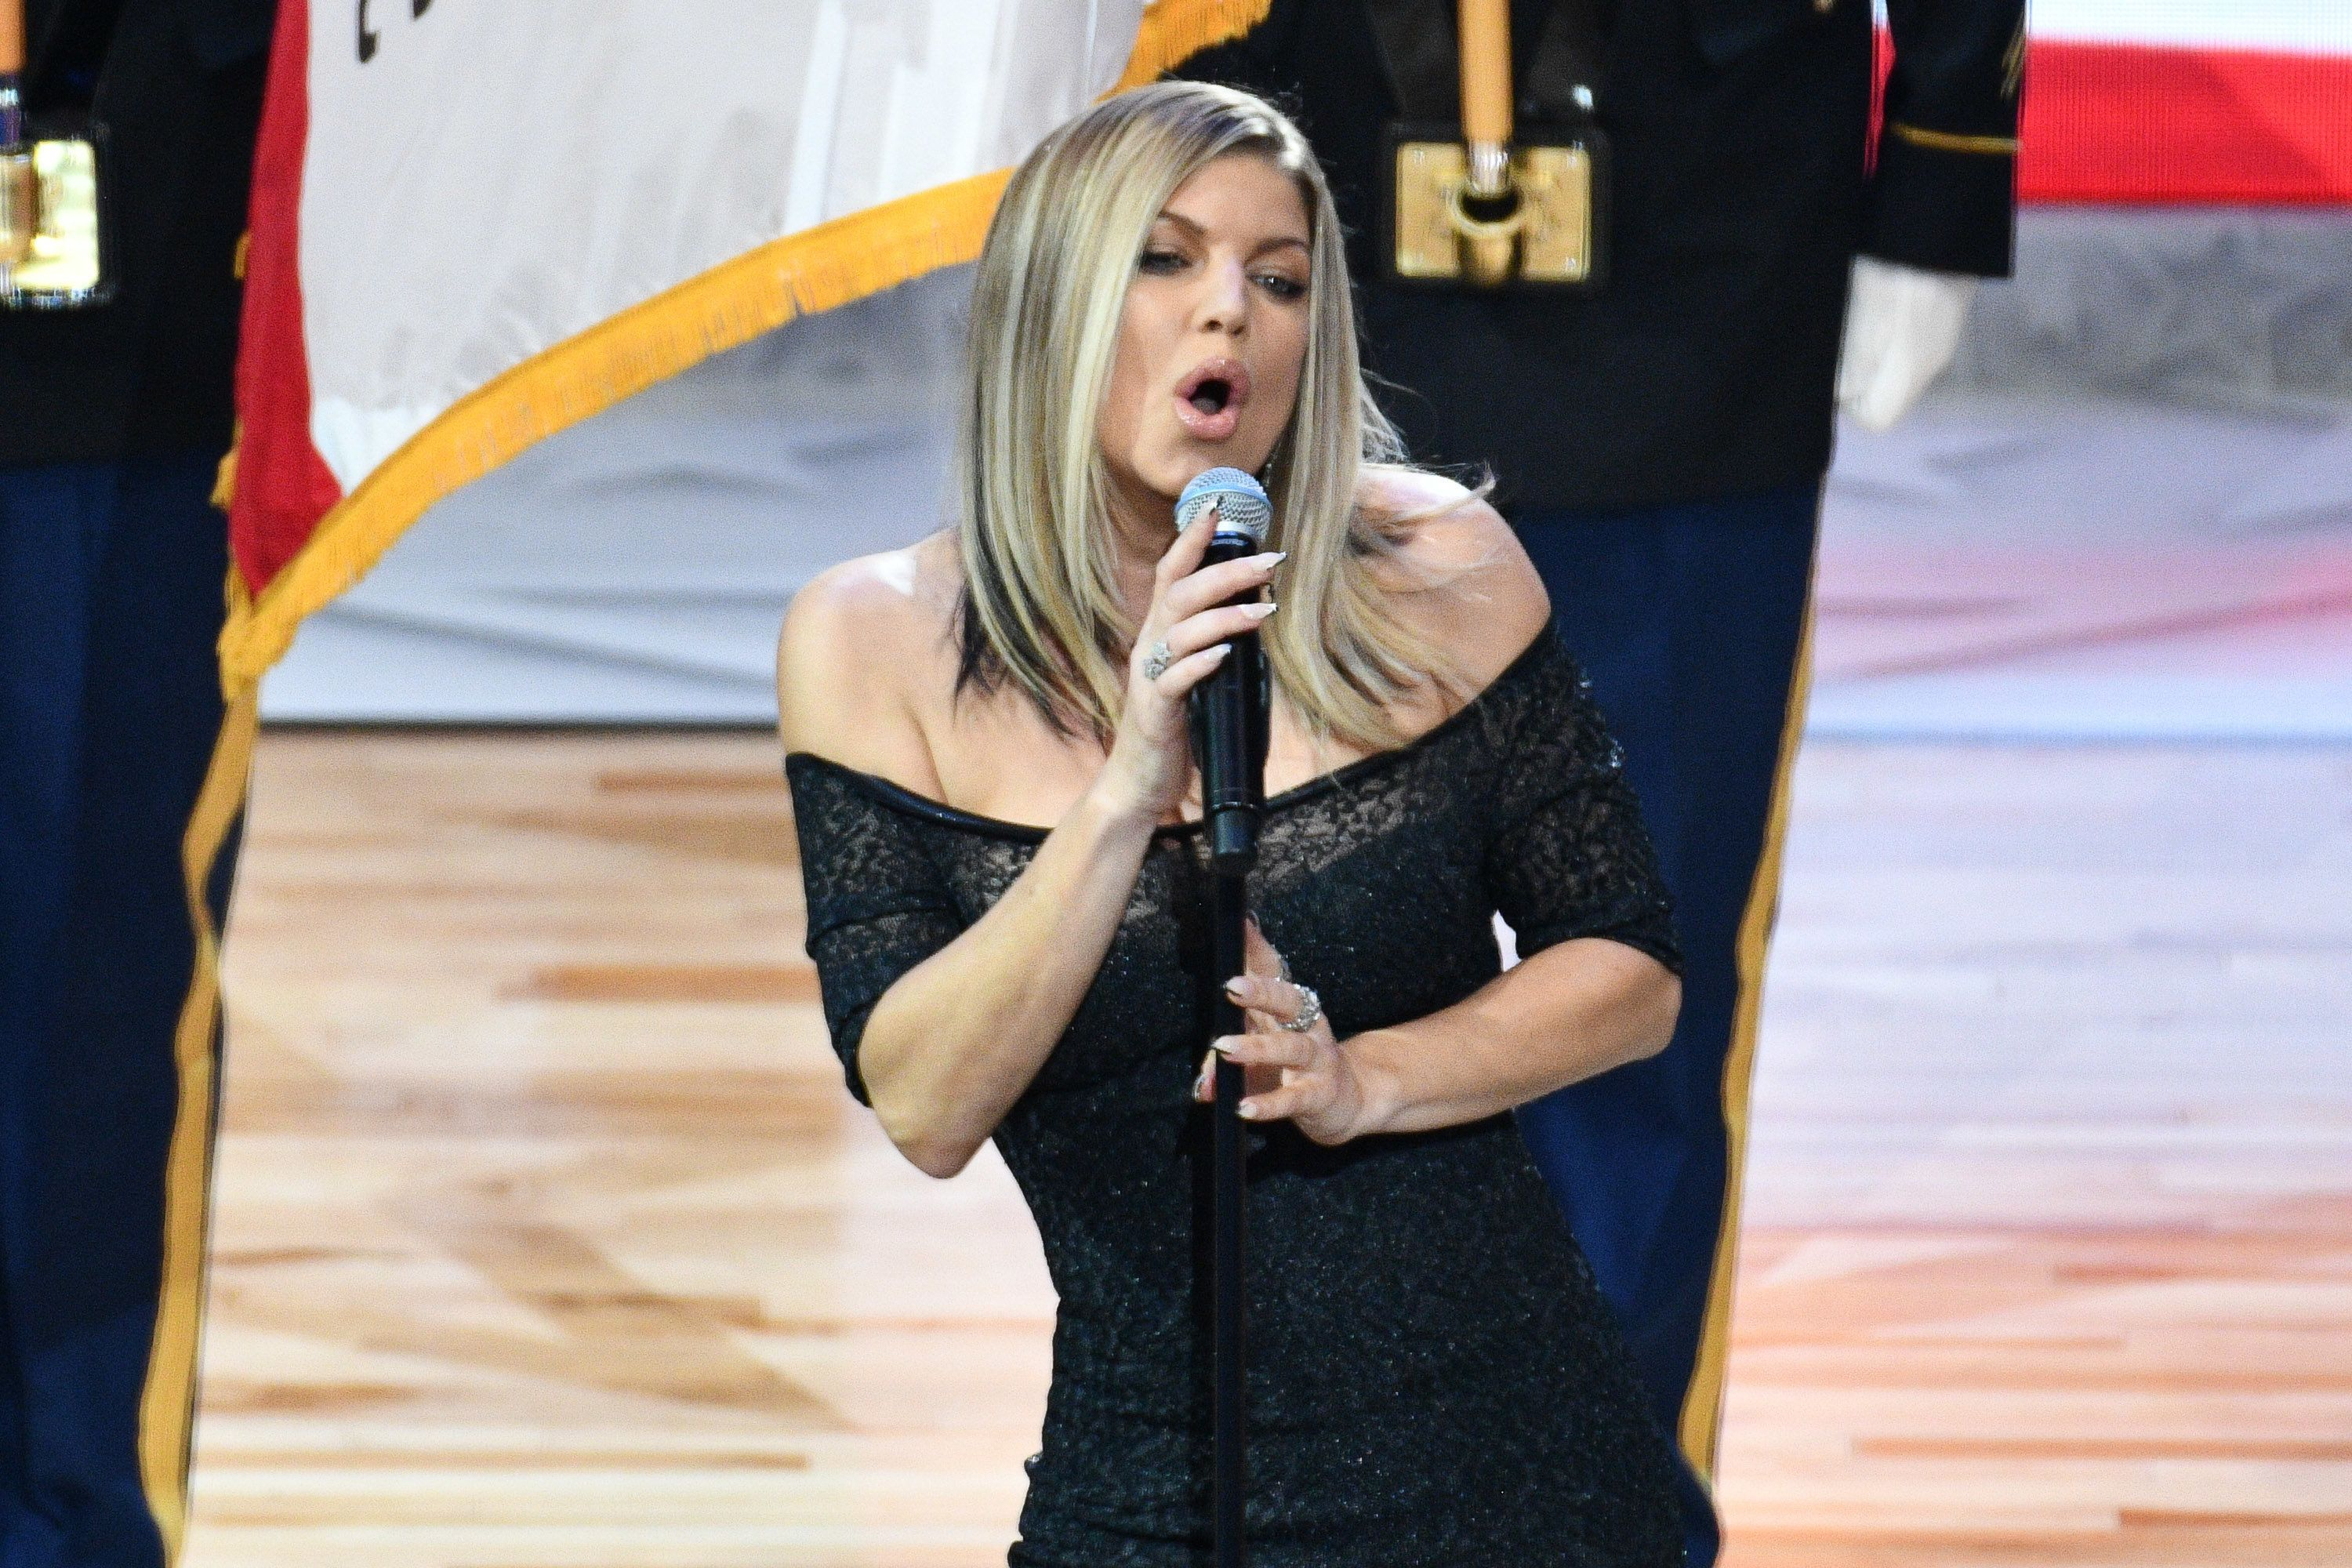 Fergie Apologises For National Anthem, Saying She 'Tried Her